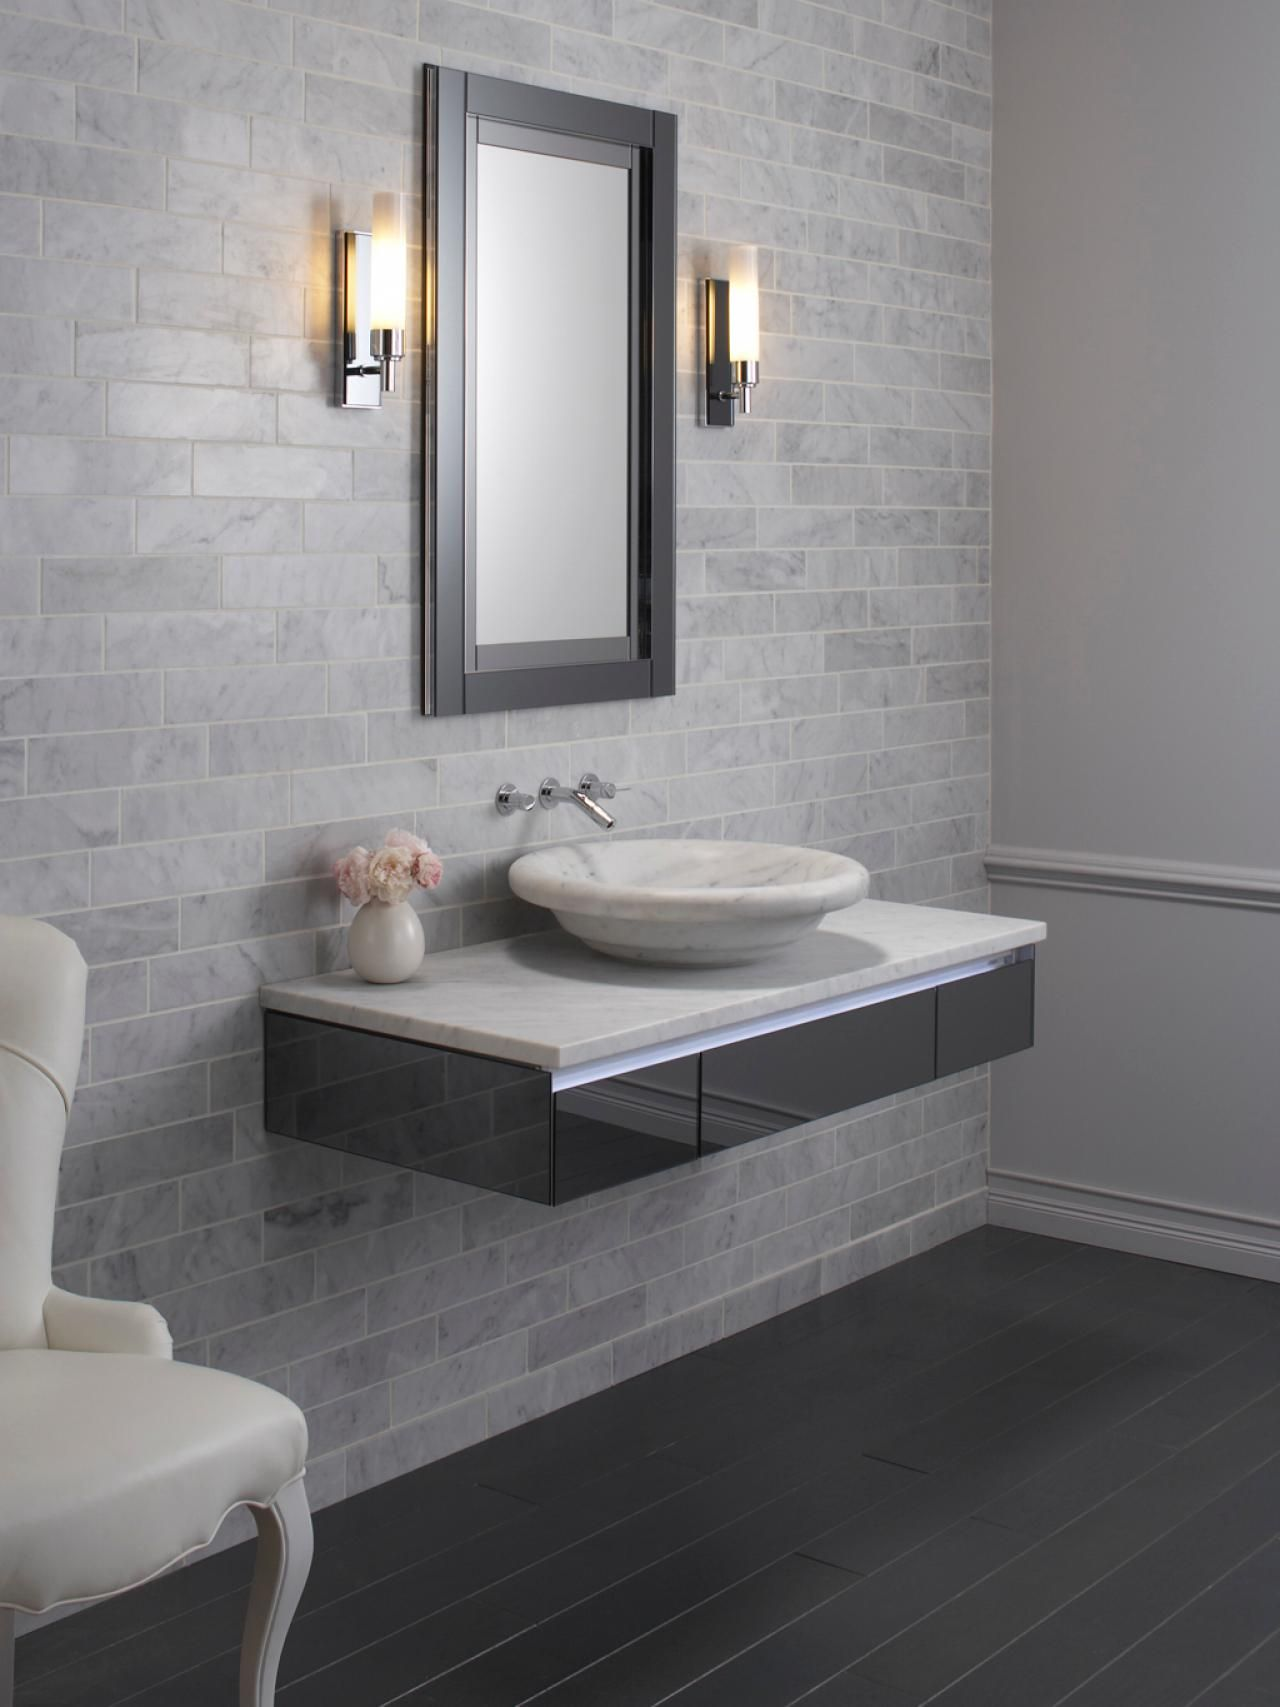 Contemporary Bathroom With Floating Sink Accessible Bathroom Design Bathroom Layout Floating Bathroom Vanity